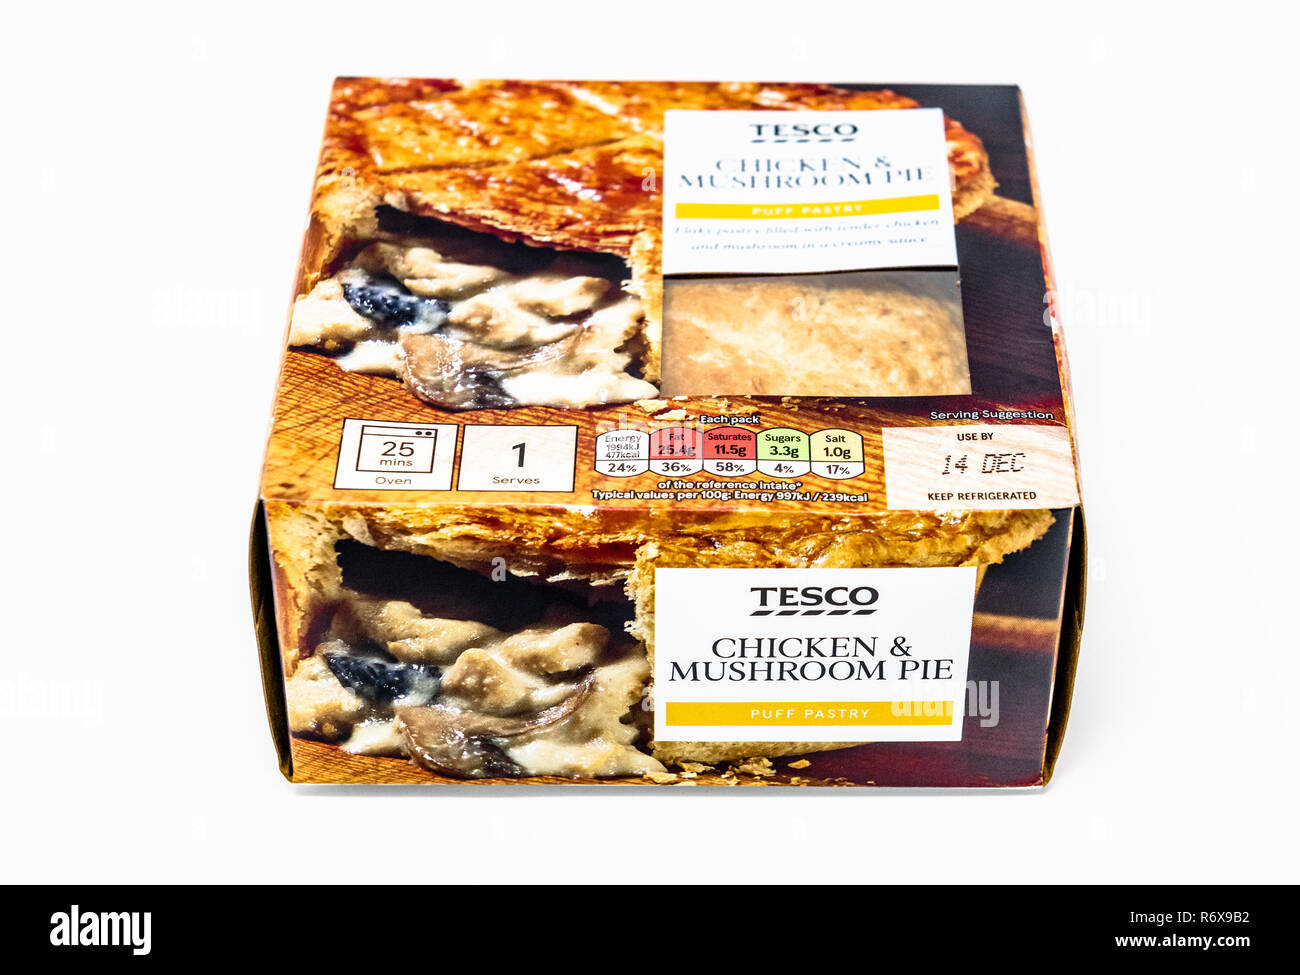 Tesco Chicken And Mushroom Pie In Its Cardboard Box Stock